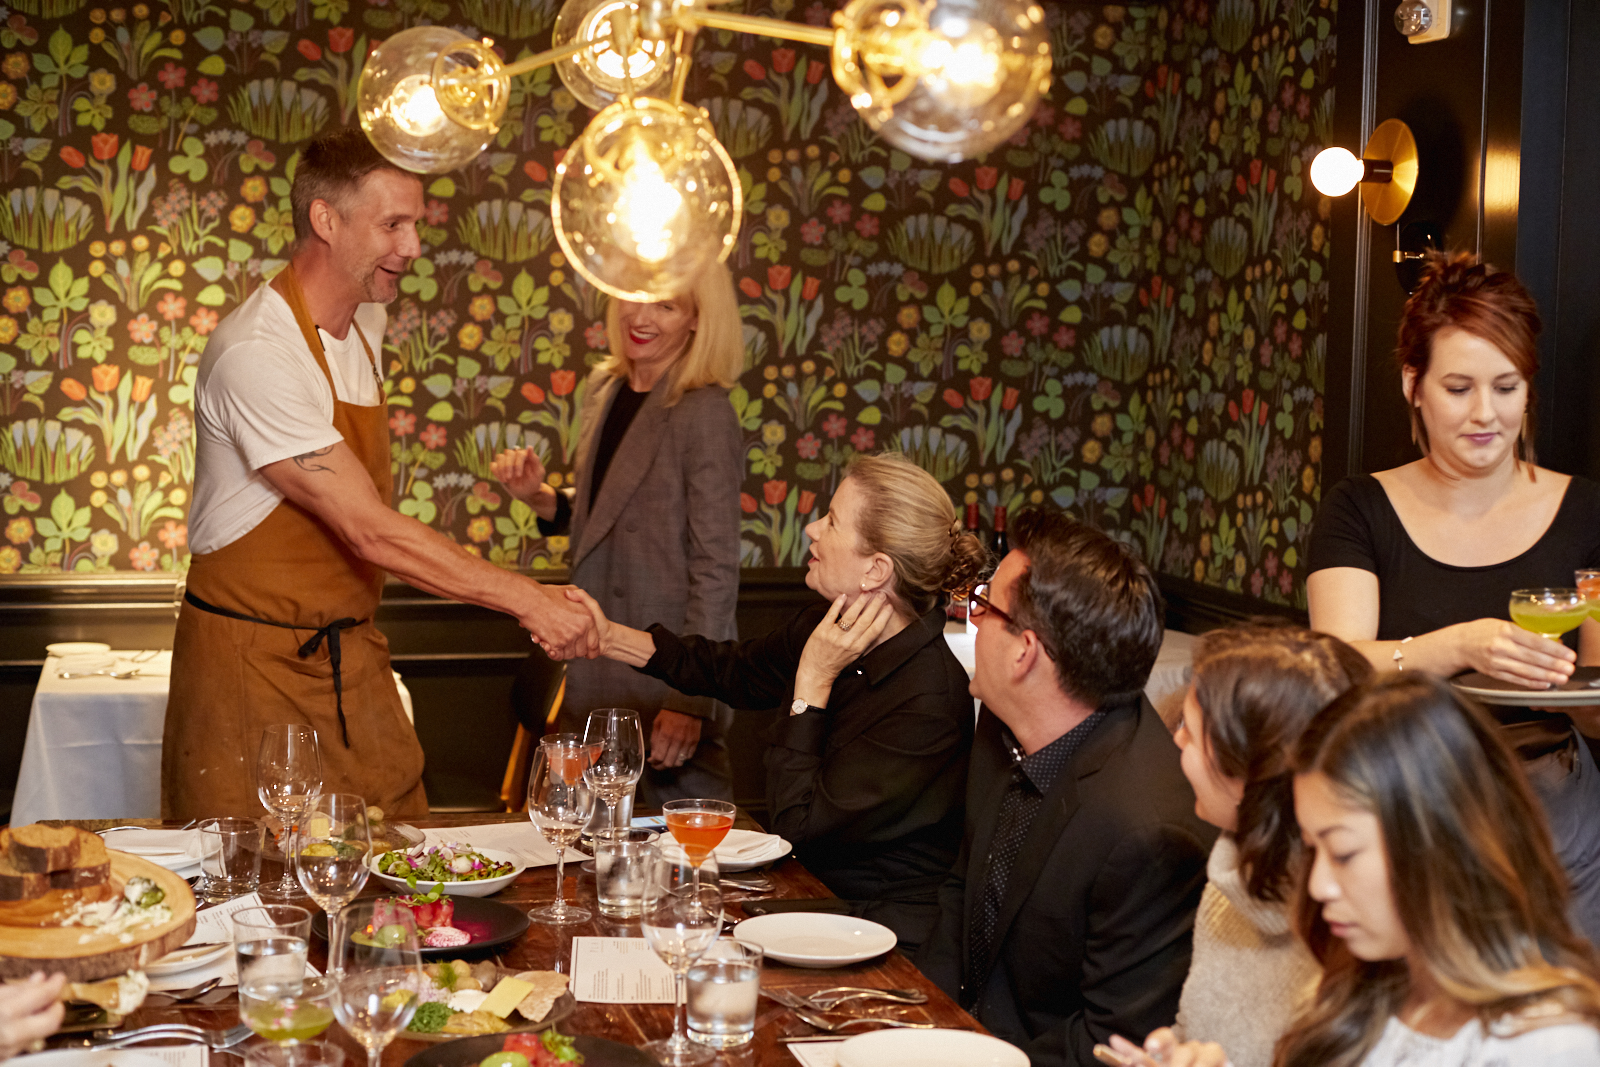 Chef Roberth Sundell of Plaj Restaurant greeting guests at our media and blogger dinner.